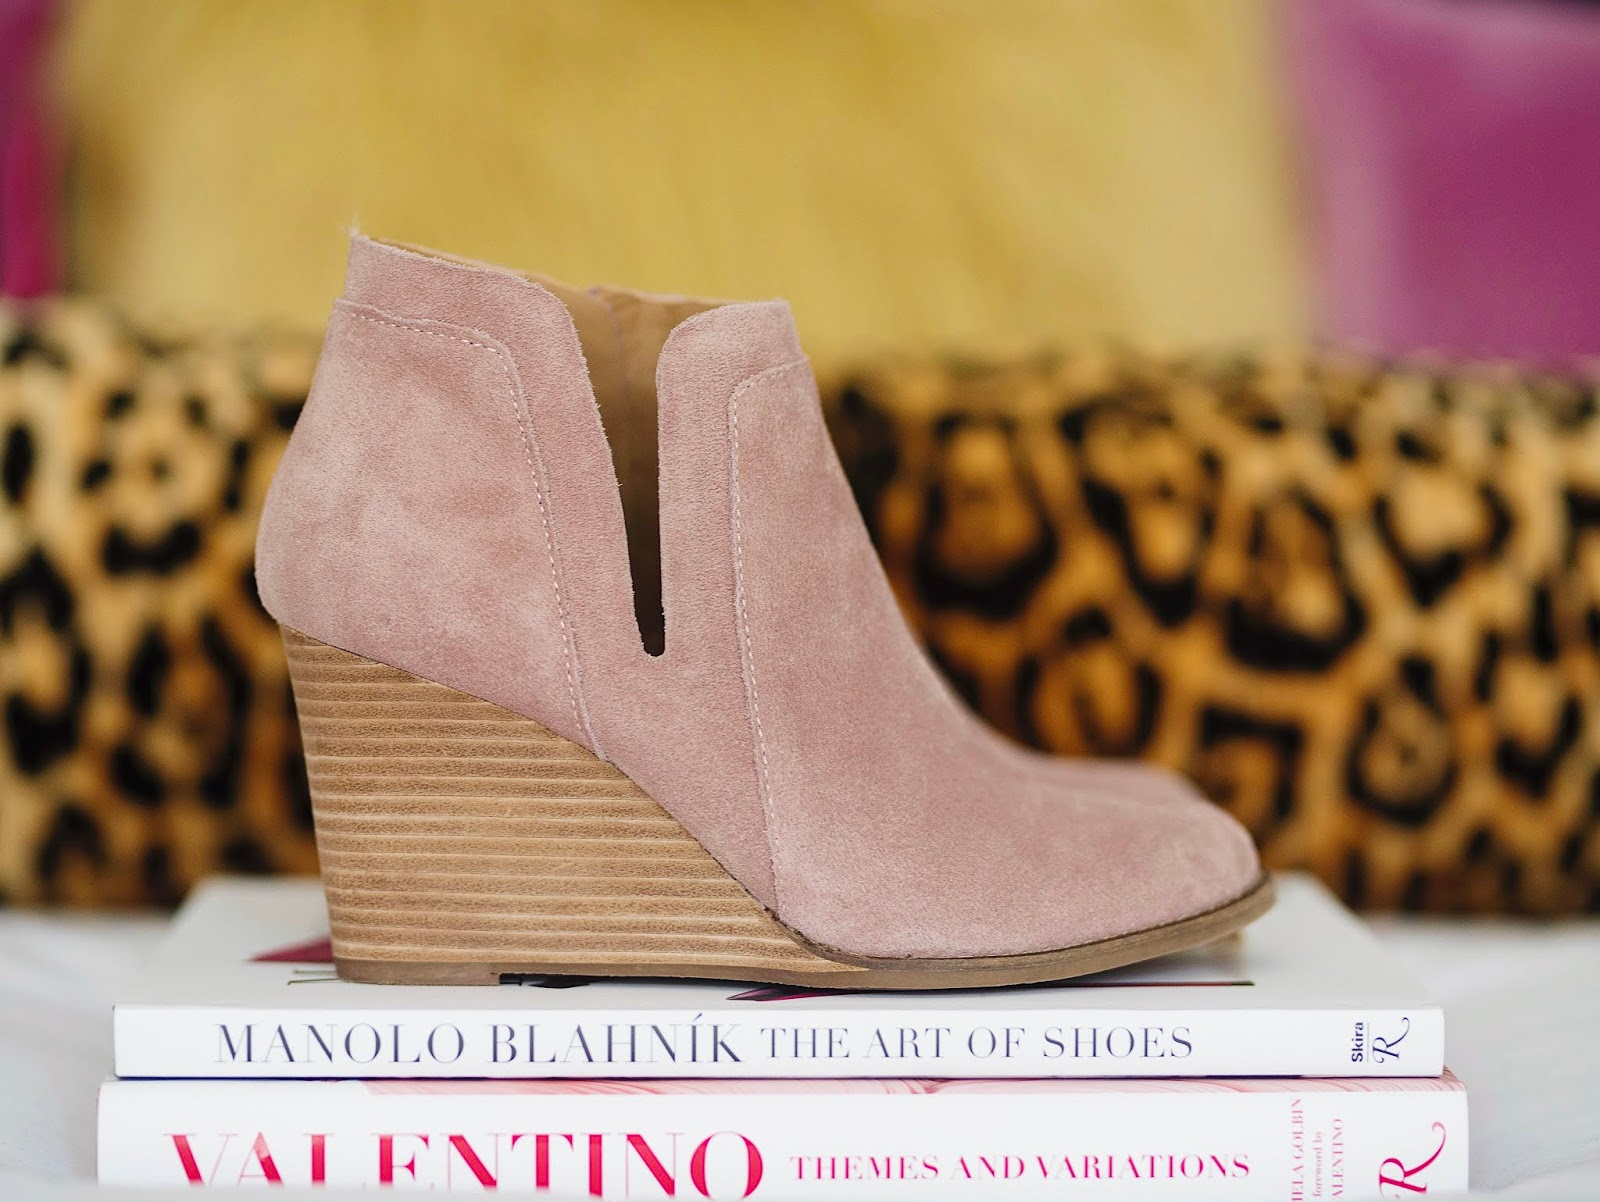 bd95f7db956 Nordstrom Anniversary Sale Lucky Brand Yabba Wedge Bootie - Something  Delightful Blog